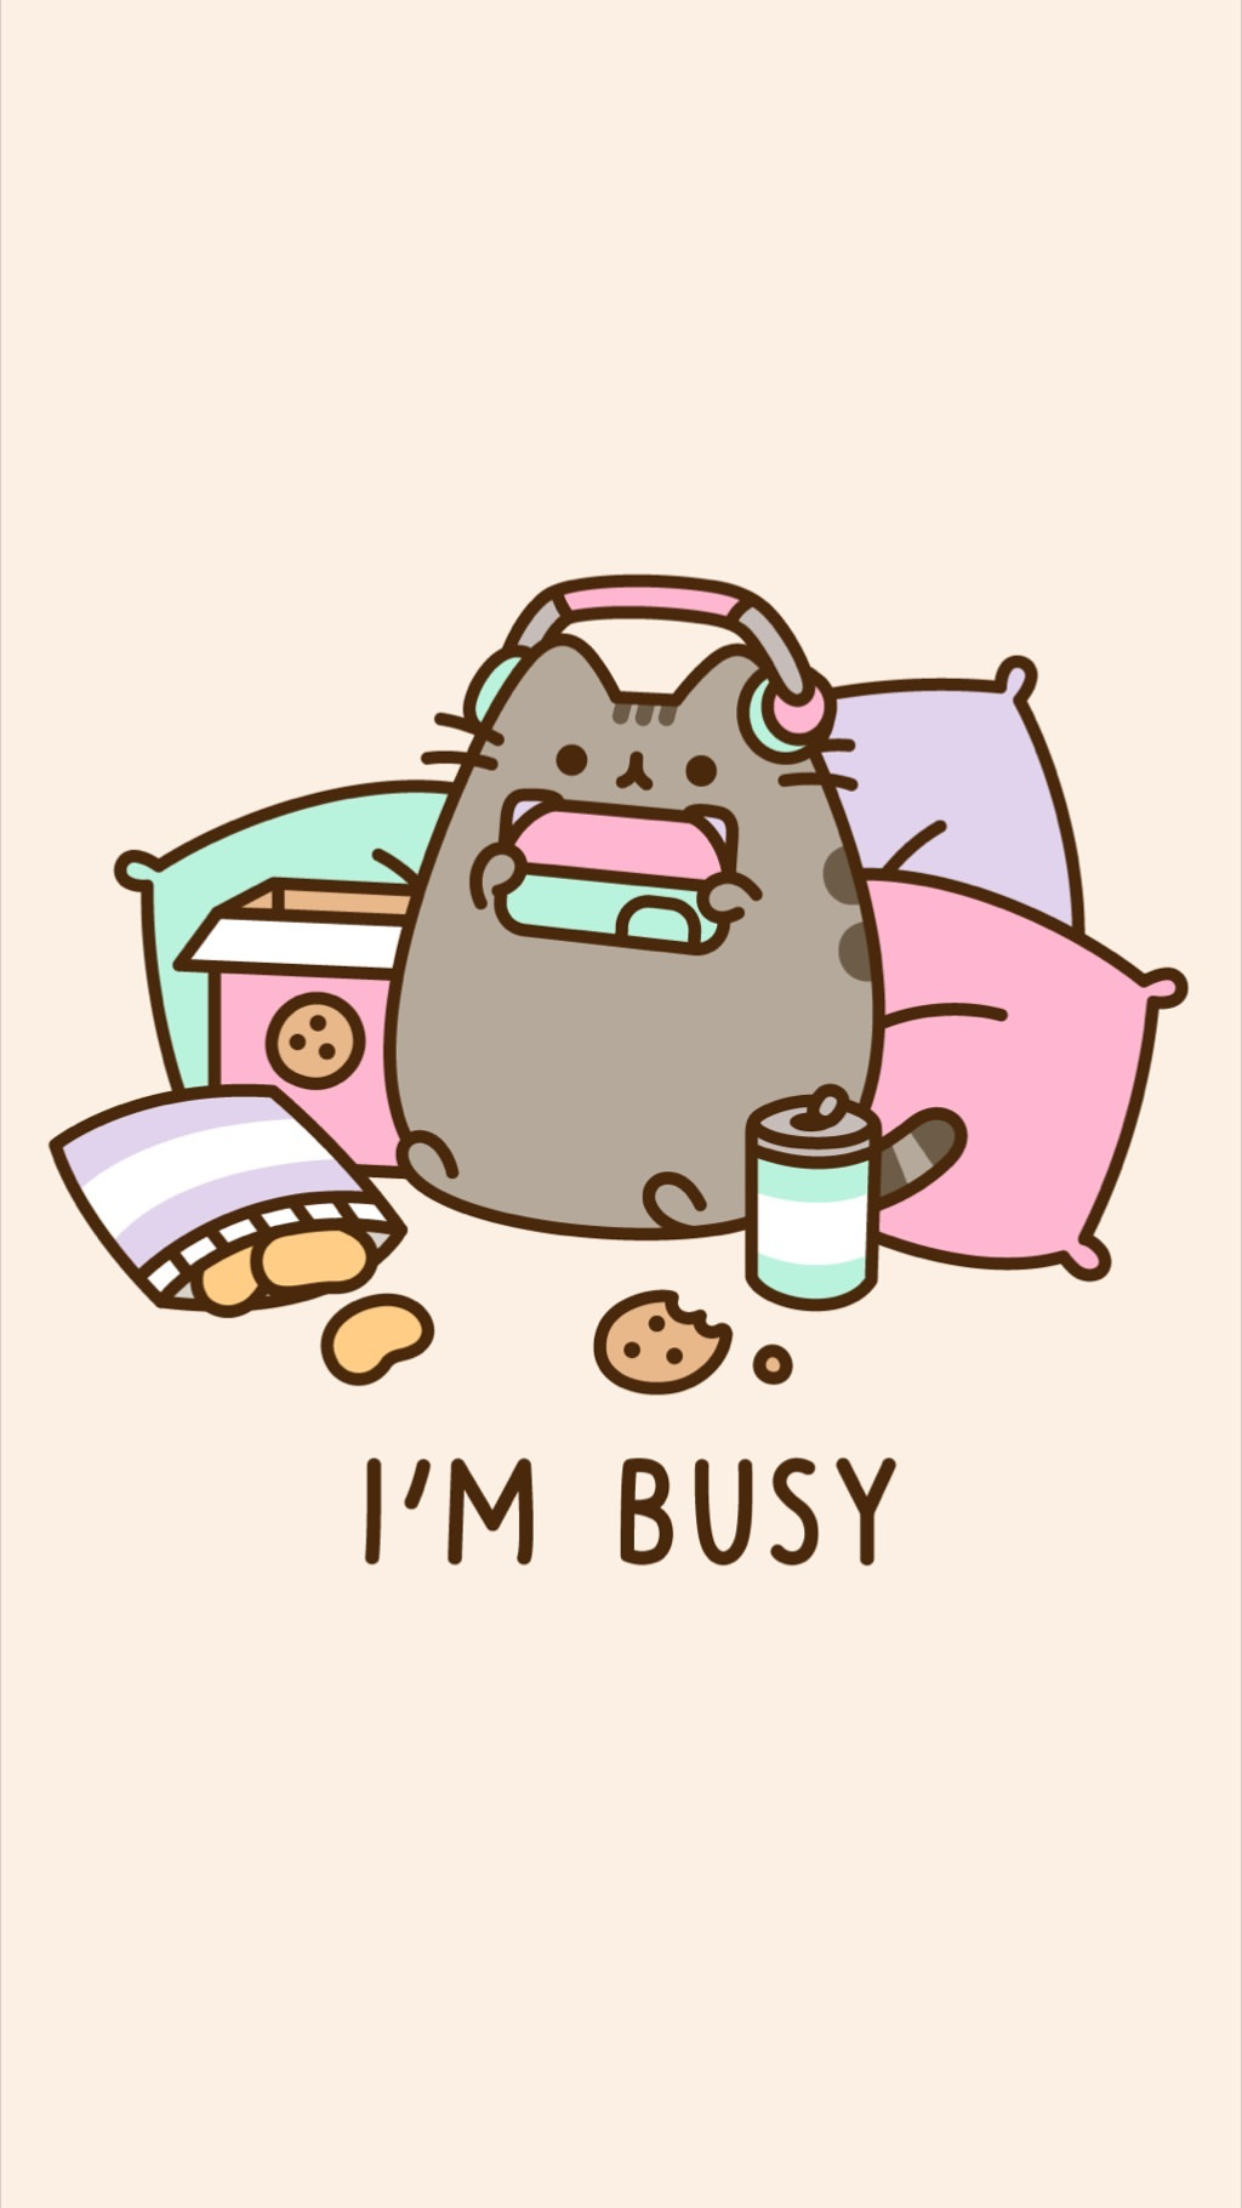 Pin by Emily swainer on Pusheen stuff With images Pusheen cute 1242x2208